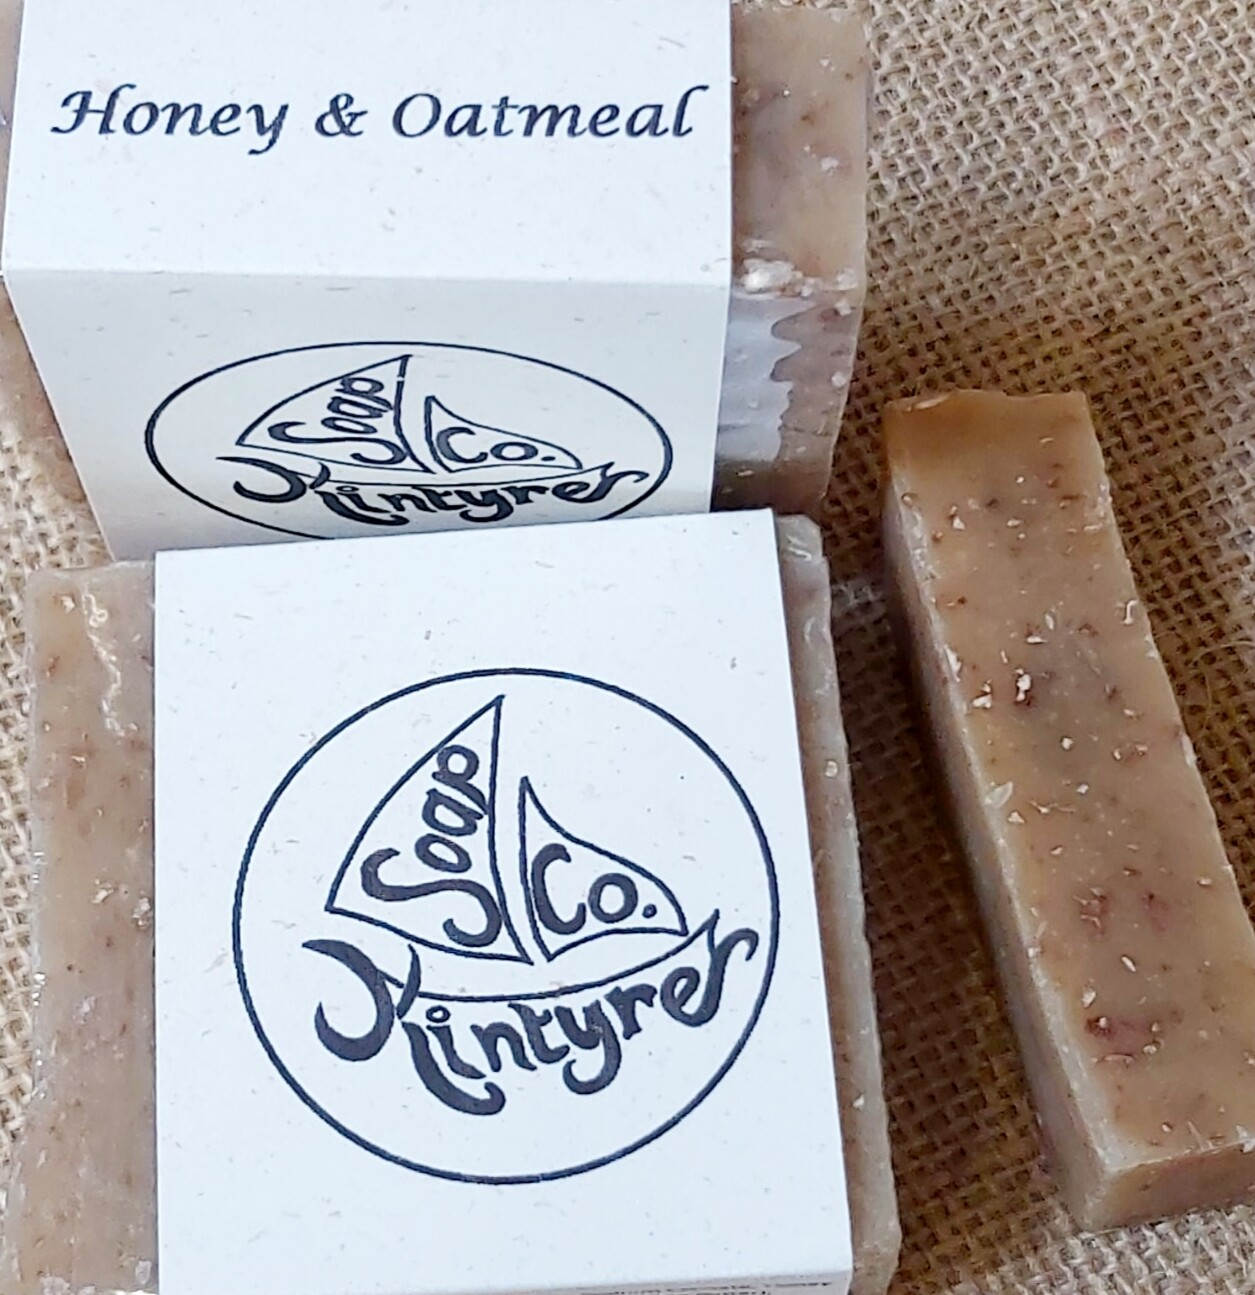 'Honey & Oatmeal' cold processed soap